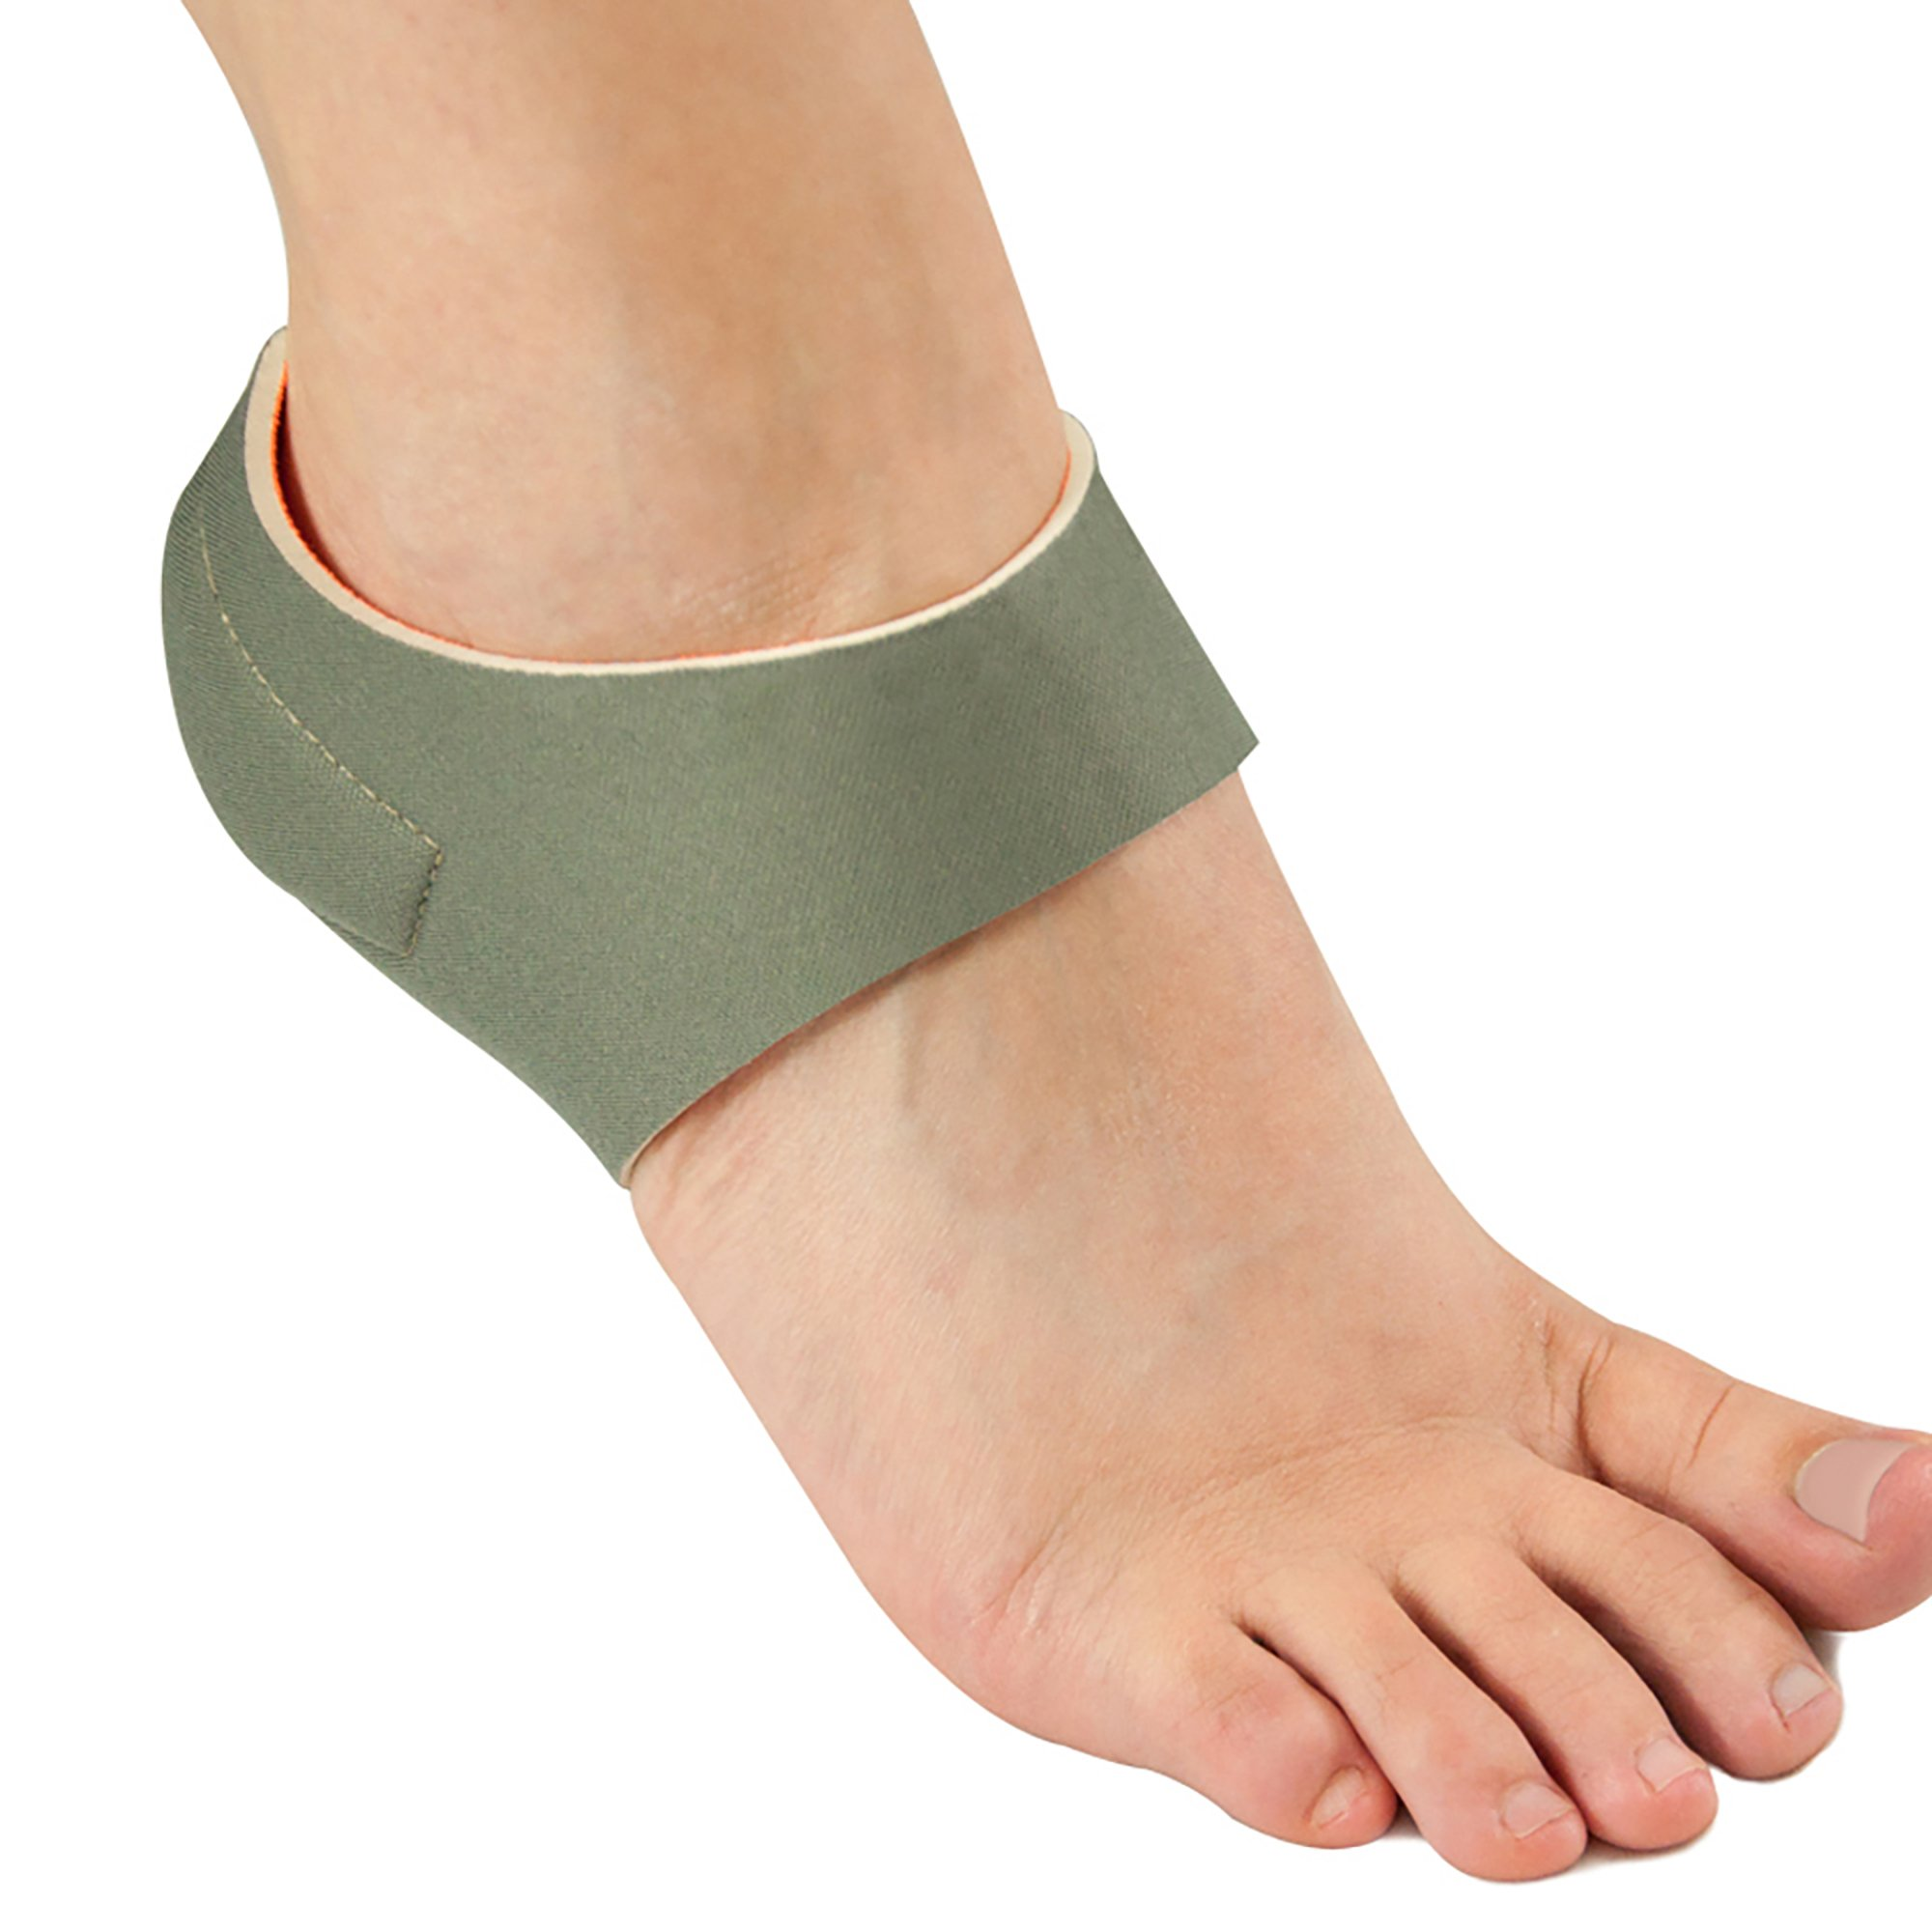 Patented Plantar Fasciitis Heel Hugger with Magnet Therapy for Heel Pain, Medium by Brownmed